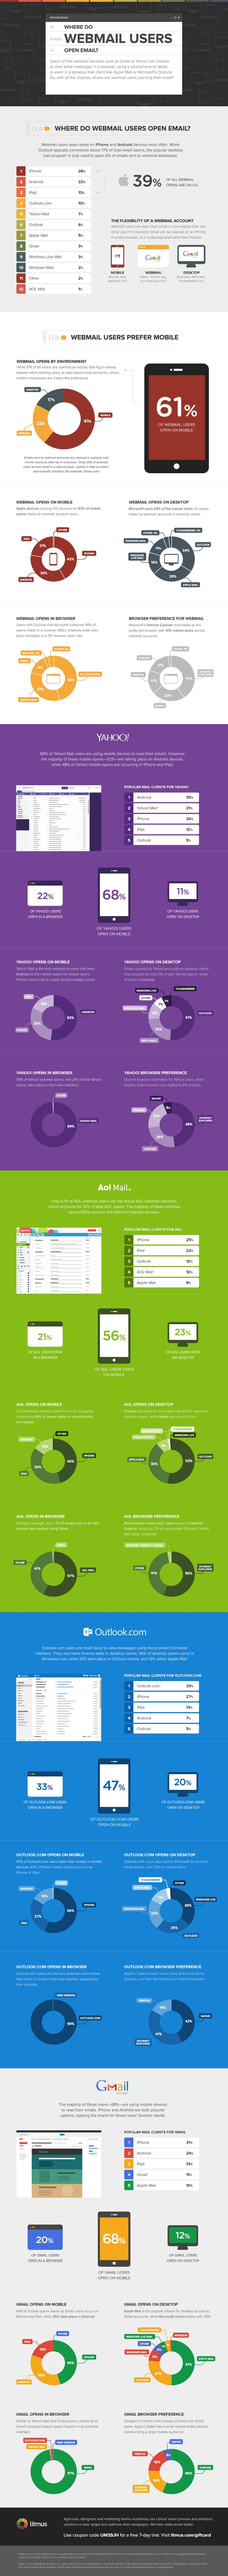 [Infographi] Have Webmail Users Gone Mobile? via Litmus